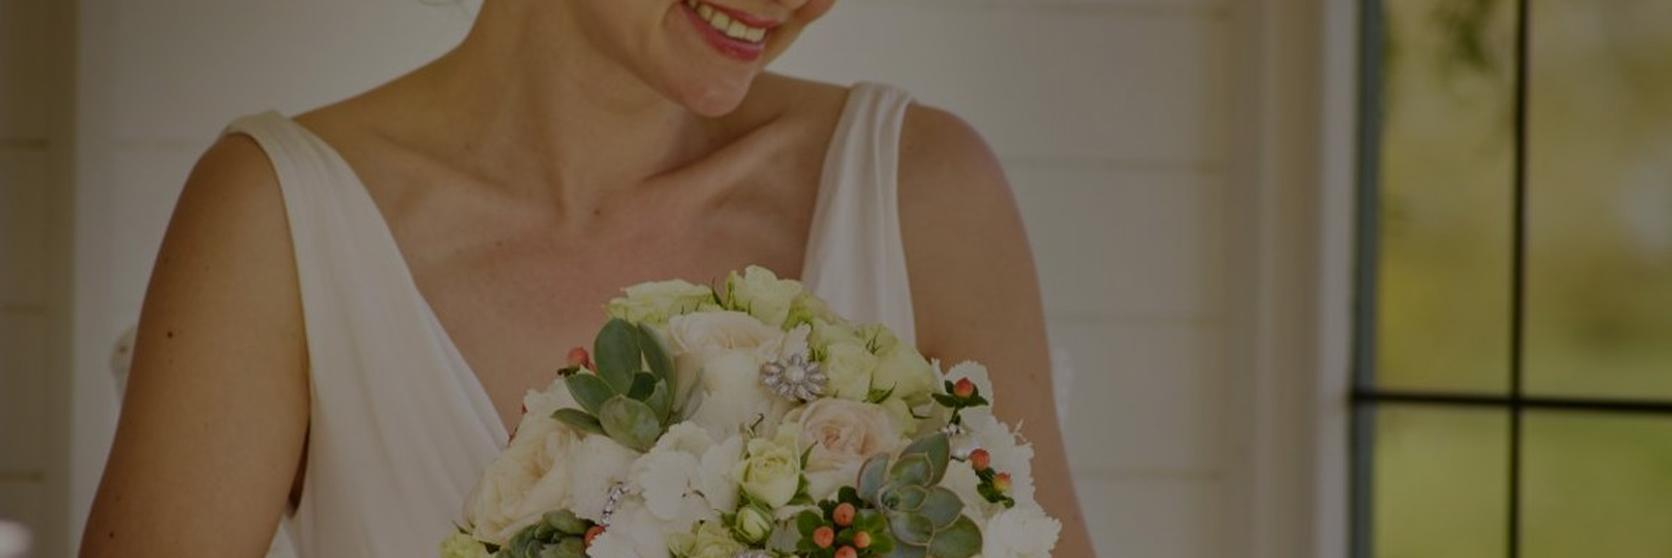 The_different_types_of_wedding_bouquet_1200x800